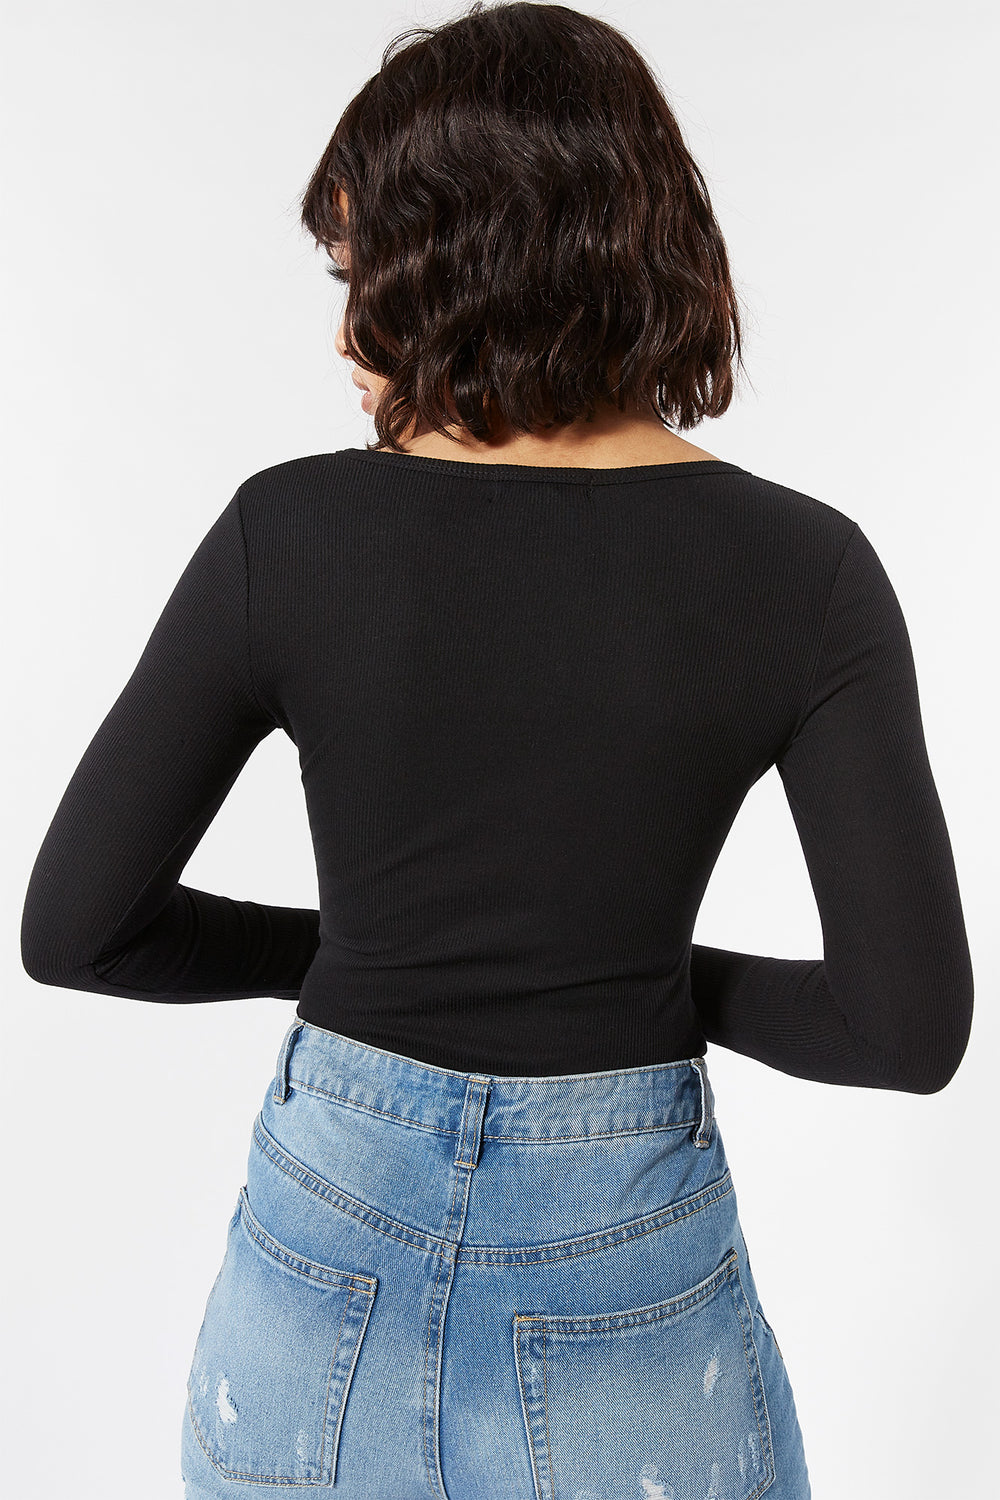 Ribbed Snap-Button Front Long Sleeve Bodysuit Black